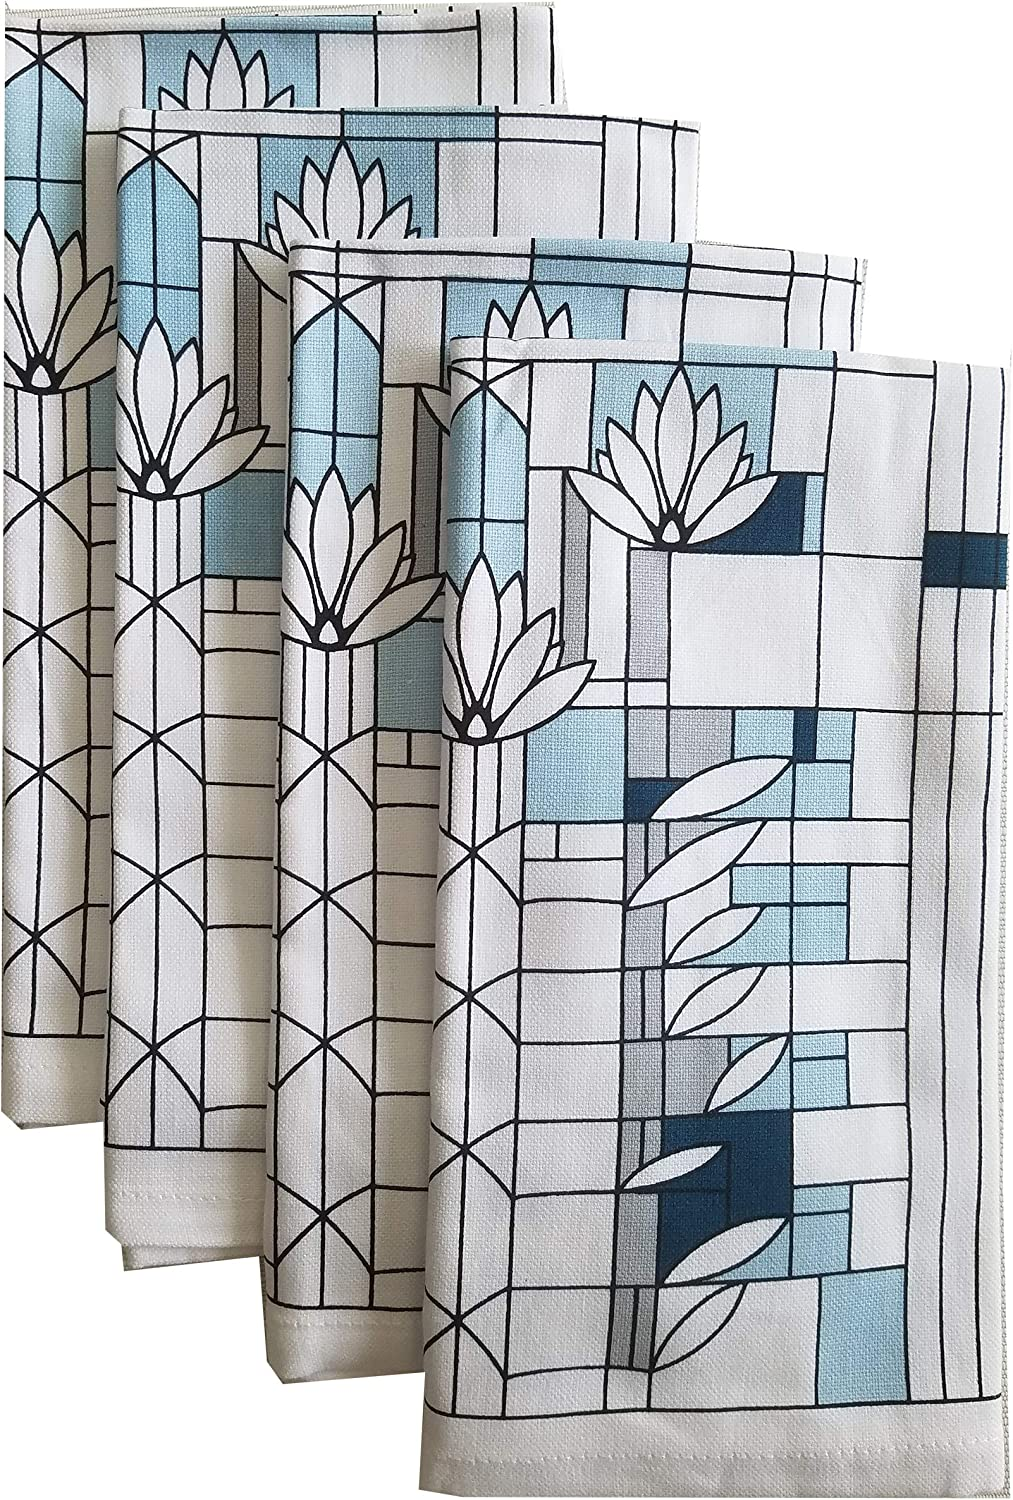 KAF Home Frank Lloyd Wright Printed Dinner Napkin 20 x 20-inch 100-Percent Cotton Set of 4 (Water Lilies)